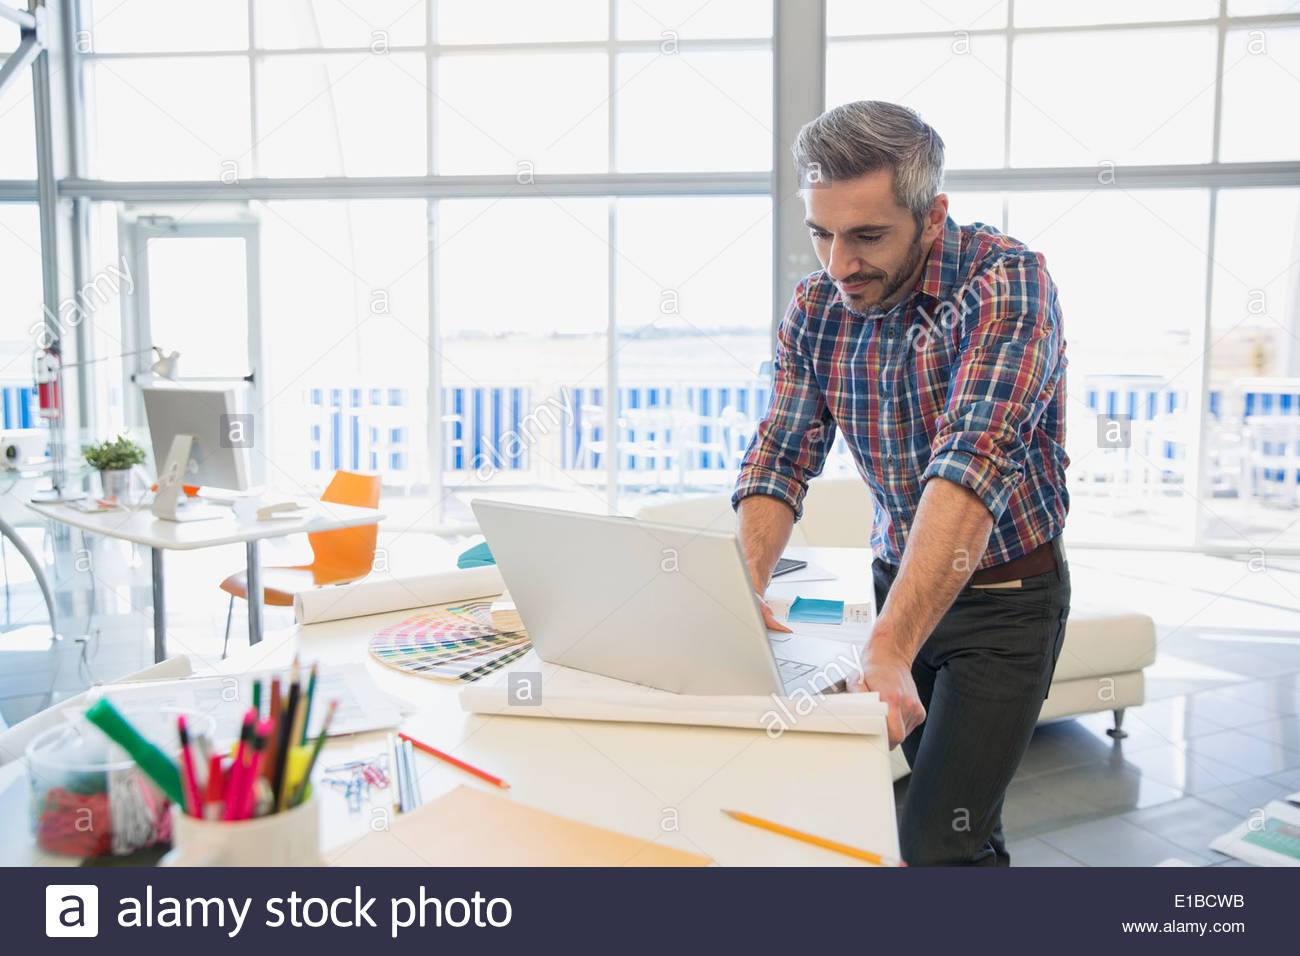 Creative businessman at laptop in office - Stock Image